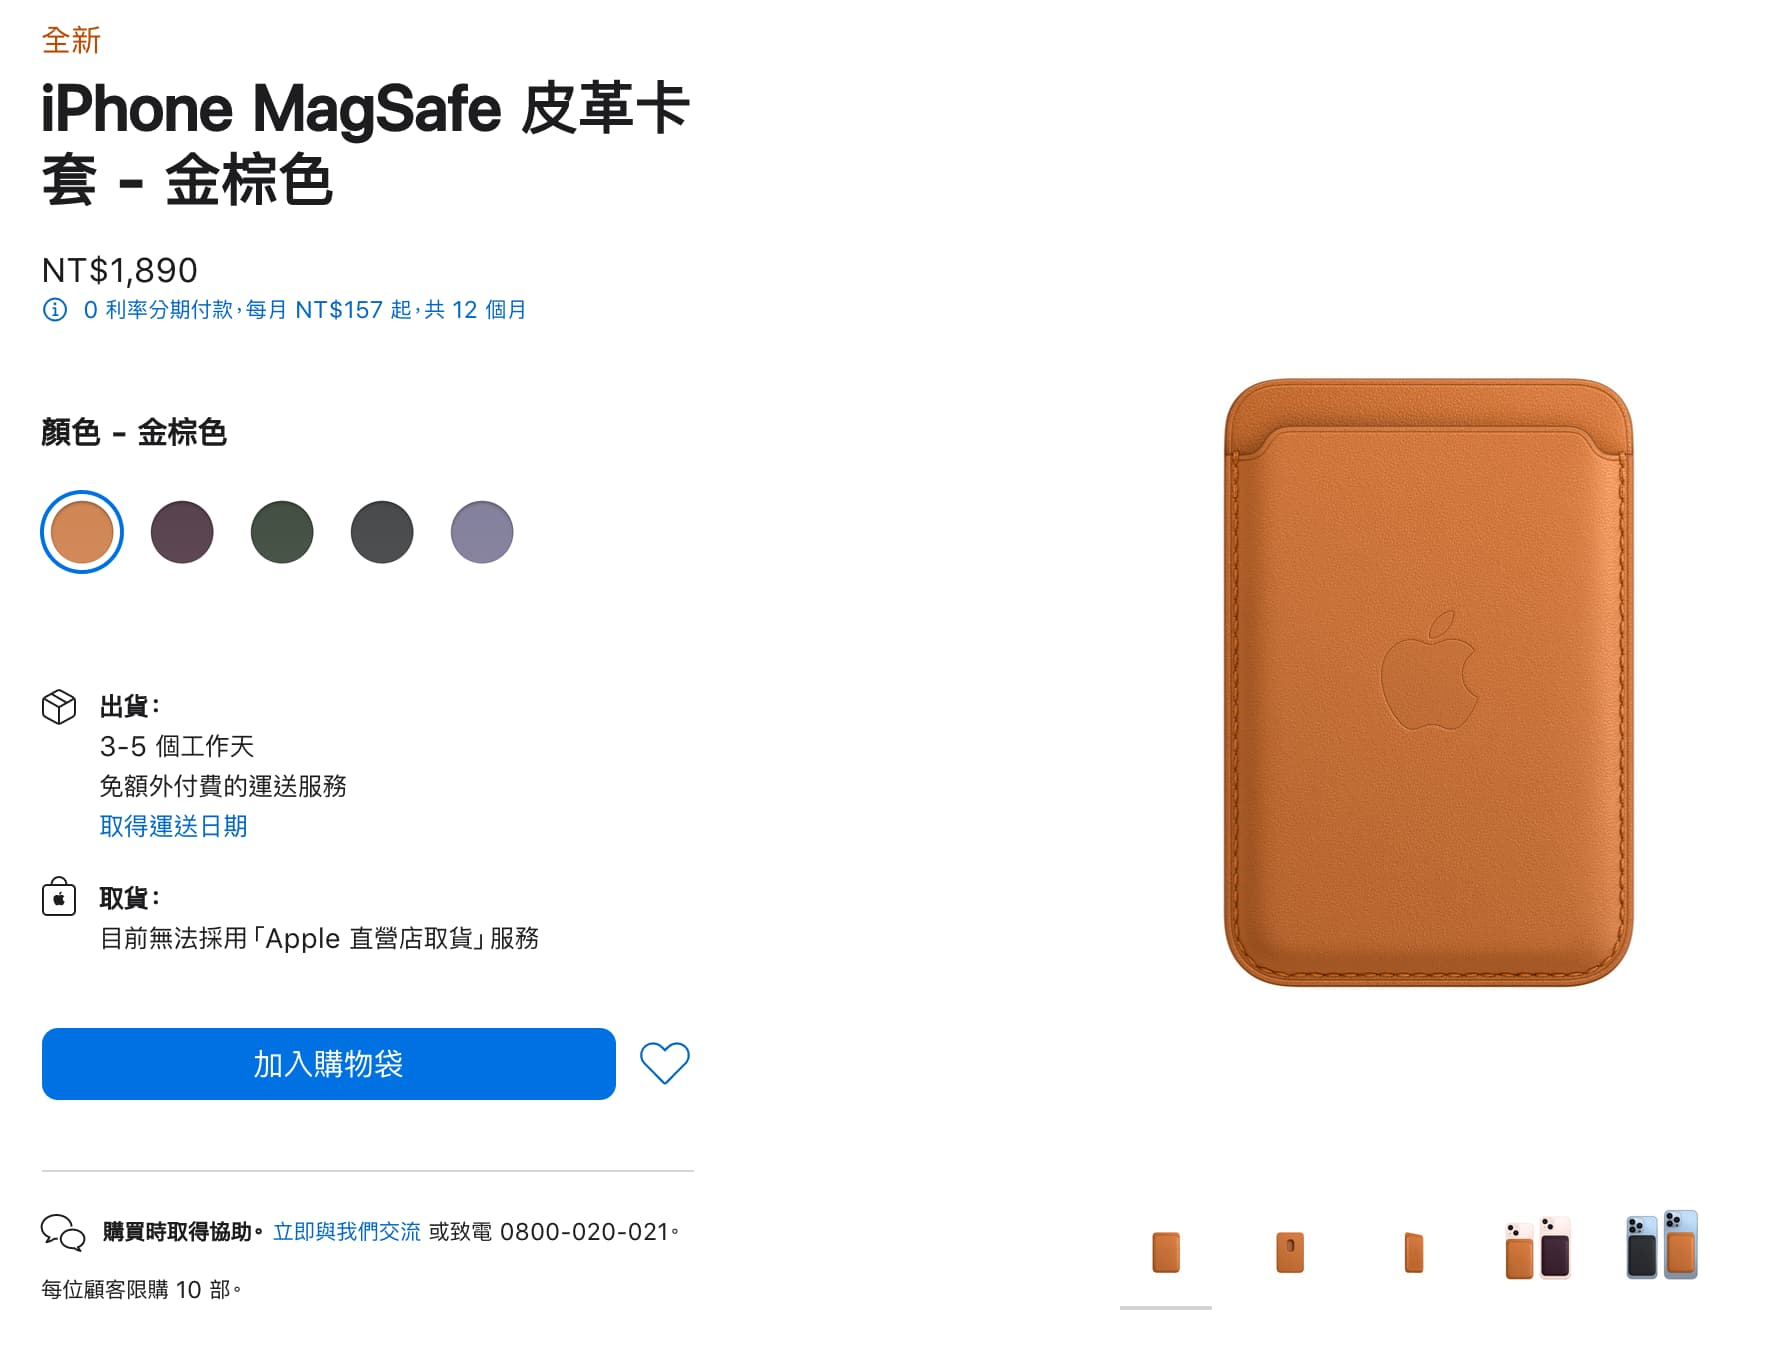 MagSafe 配件支援尋找功能